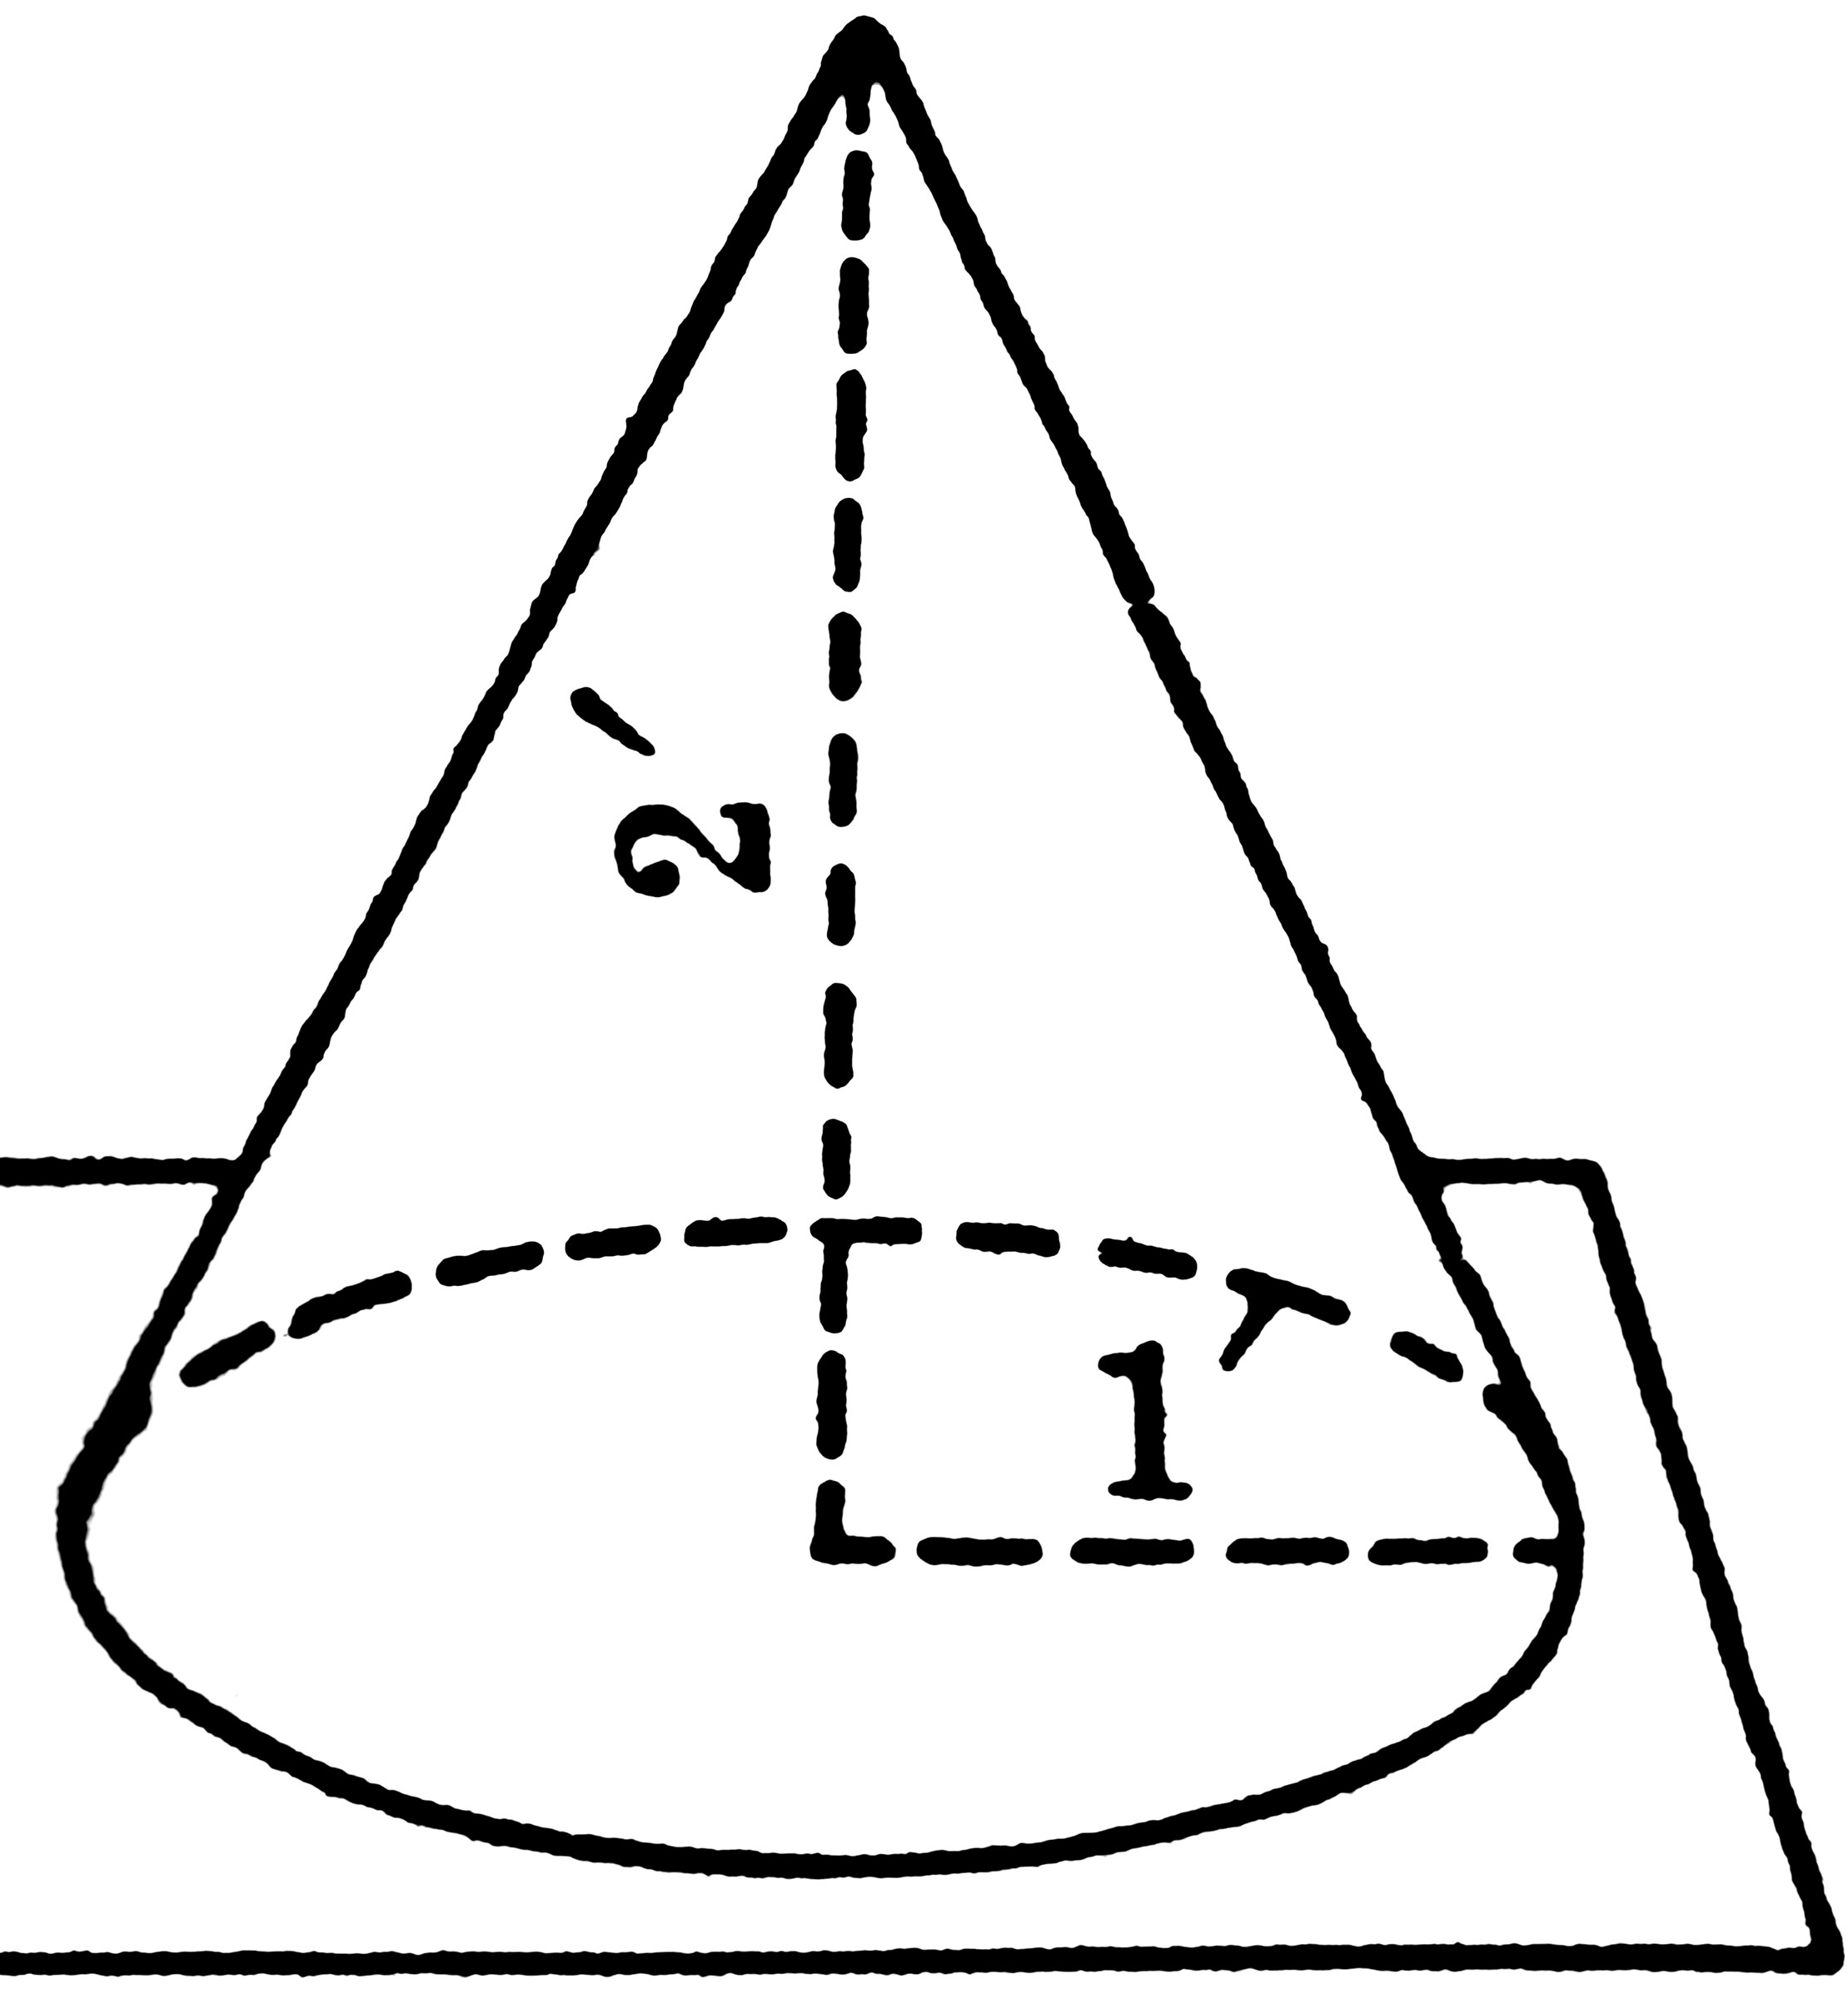 Right Circular Cone With 2 ft. Height and 1 ft. Radius